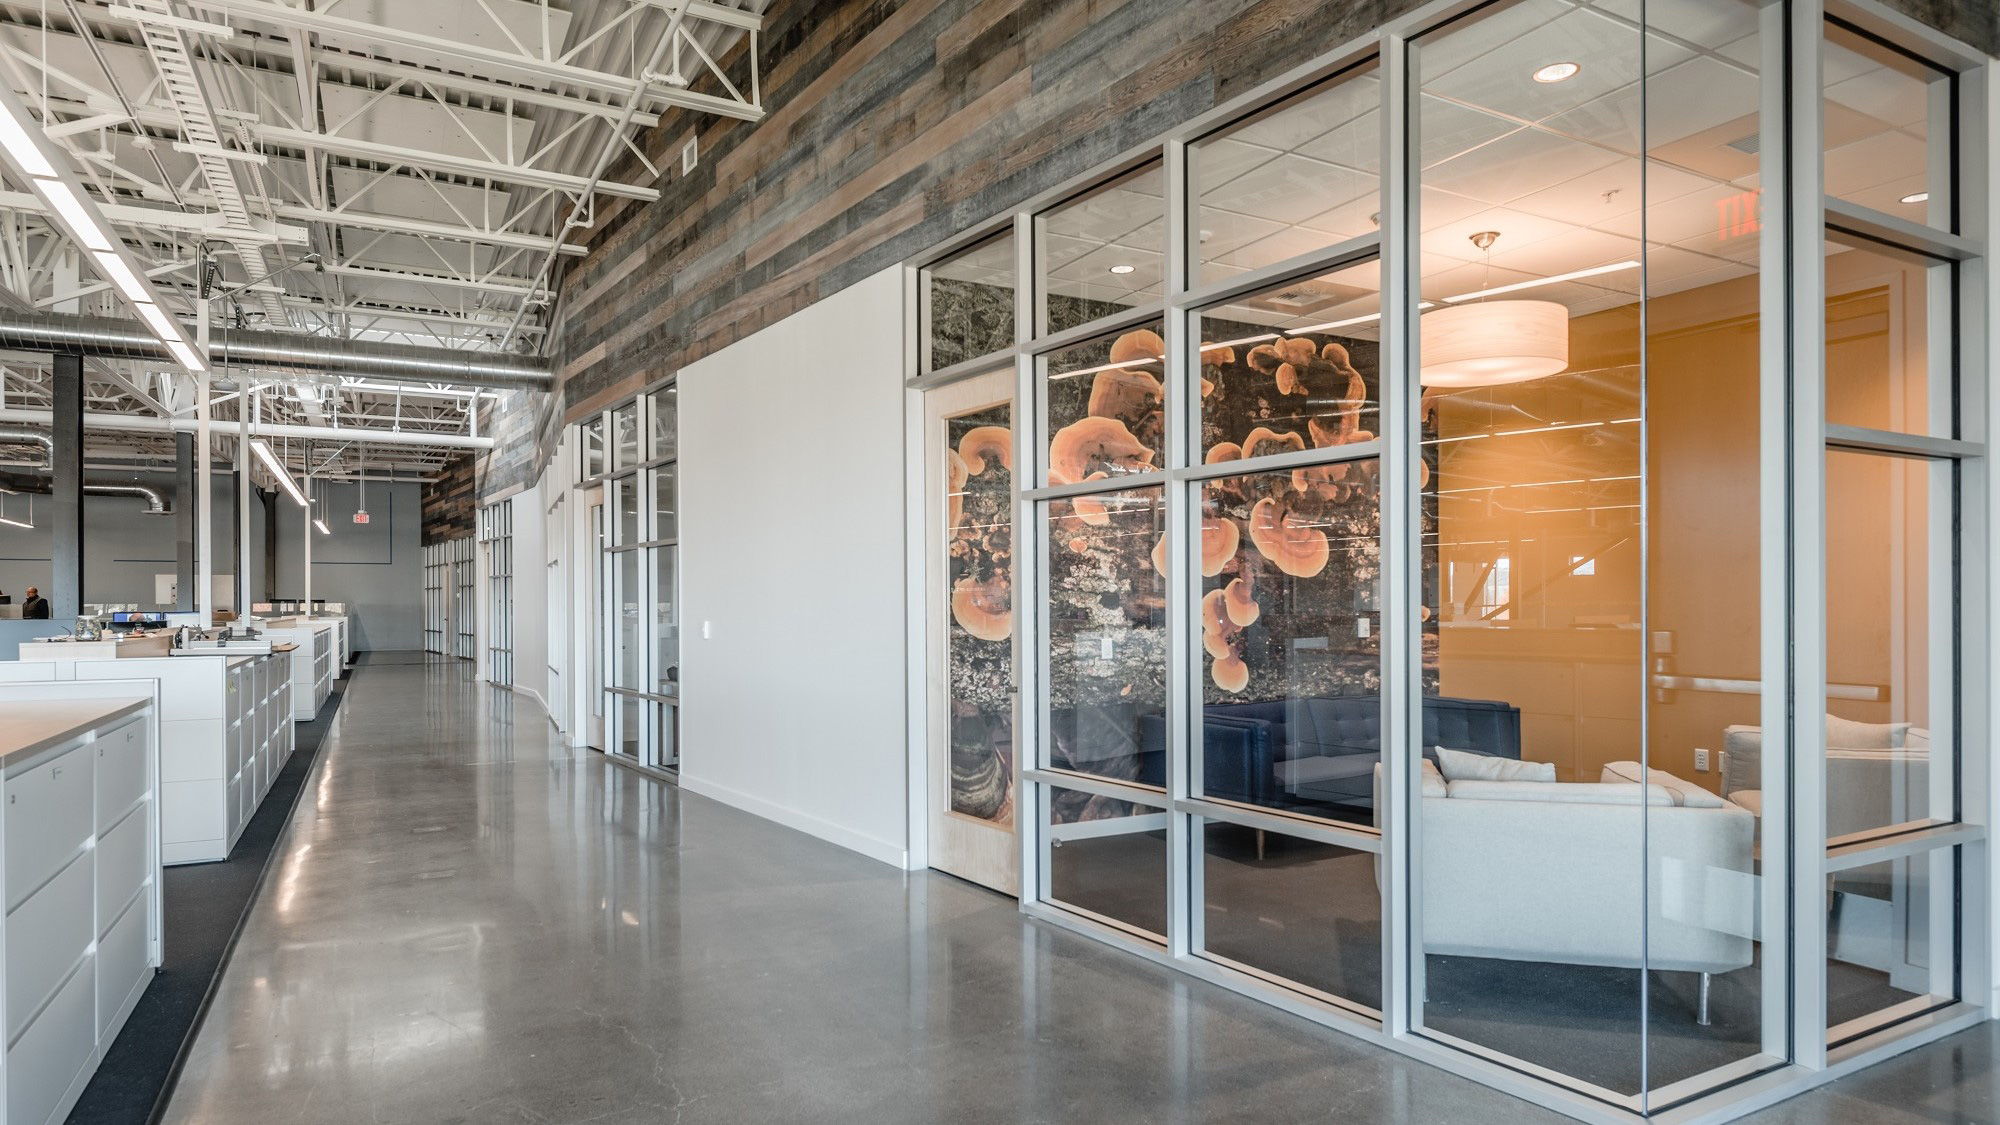 Tenant-Improvements-Rohnert-Park-TMI-2-2-Meeting-Room-with-glass-wall-and-wallpaper-under-reclaimed-wood-ceiling